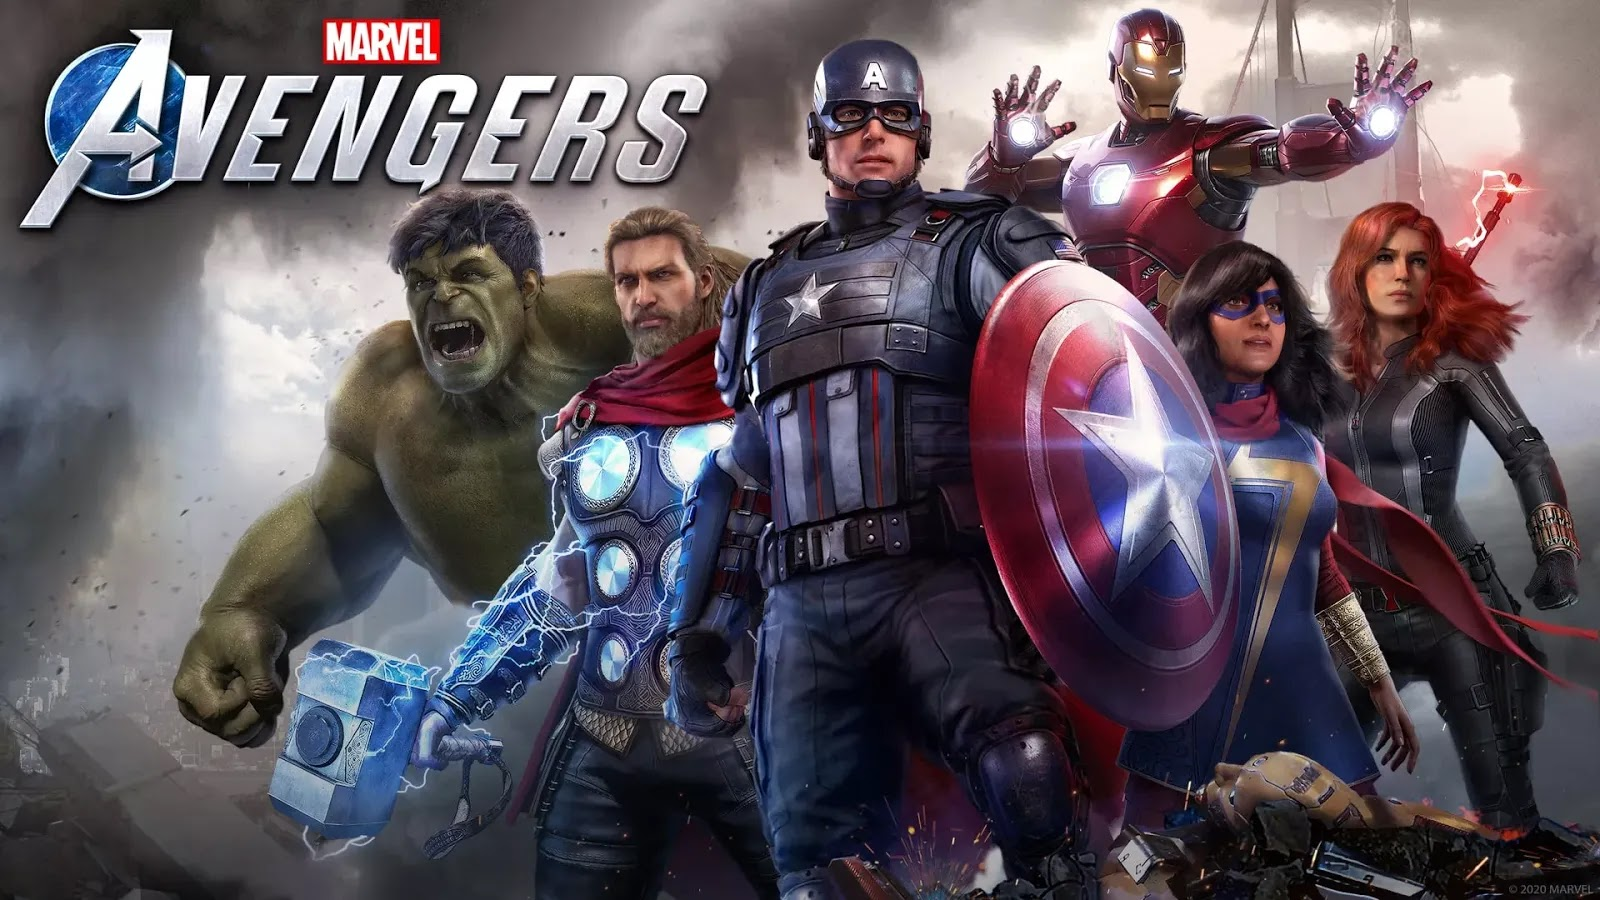 A comprehensive review of Marvel's Avengers game